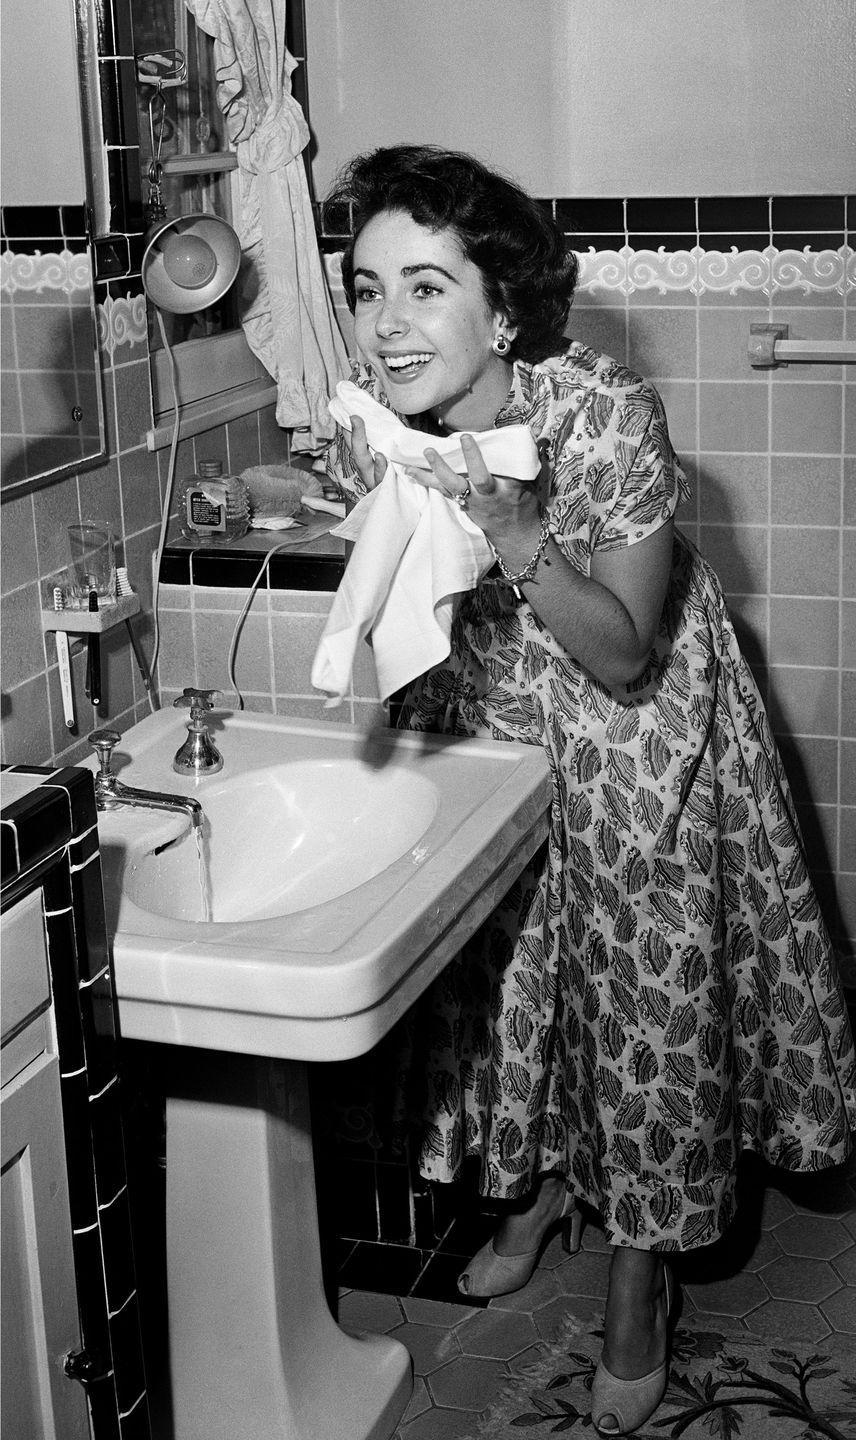 """<p>A young Elizabeth appears fresh faced after washing her face. According to <a href=""""https://www.hollywoodreporter.com/lists/12-elizabeth-taylor-s-red-carpet-beauty-secrets-1186451/item/she-never-wore-false-eyelashes-1186495"""" rel=""""nofollow noopener"""" target=""""_blank"""" data-ylk=""""slk:an interview with her former personal assistant"""" class=""""link rapid-noclick-resp"""">an interview with her former personal assistant</a>, Tim Mendelson, Elizabeth was a fan of drugstore brands and incorporated affordable creams like Jergens into her routine: """"She put cream on but she didn't use fancy brands,"""" he said.<br></p>"""